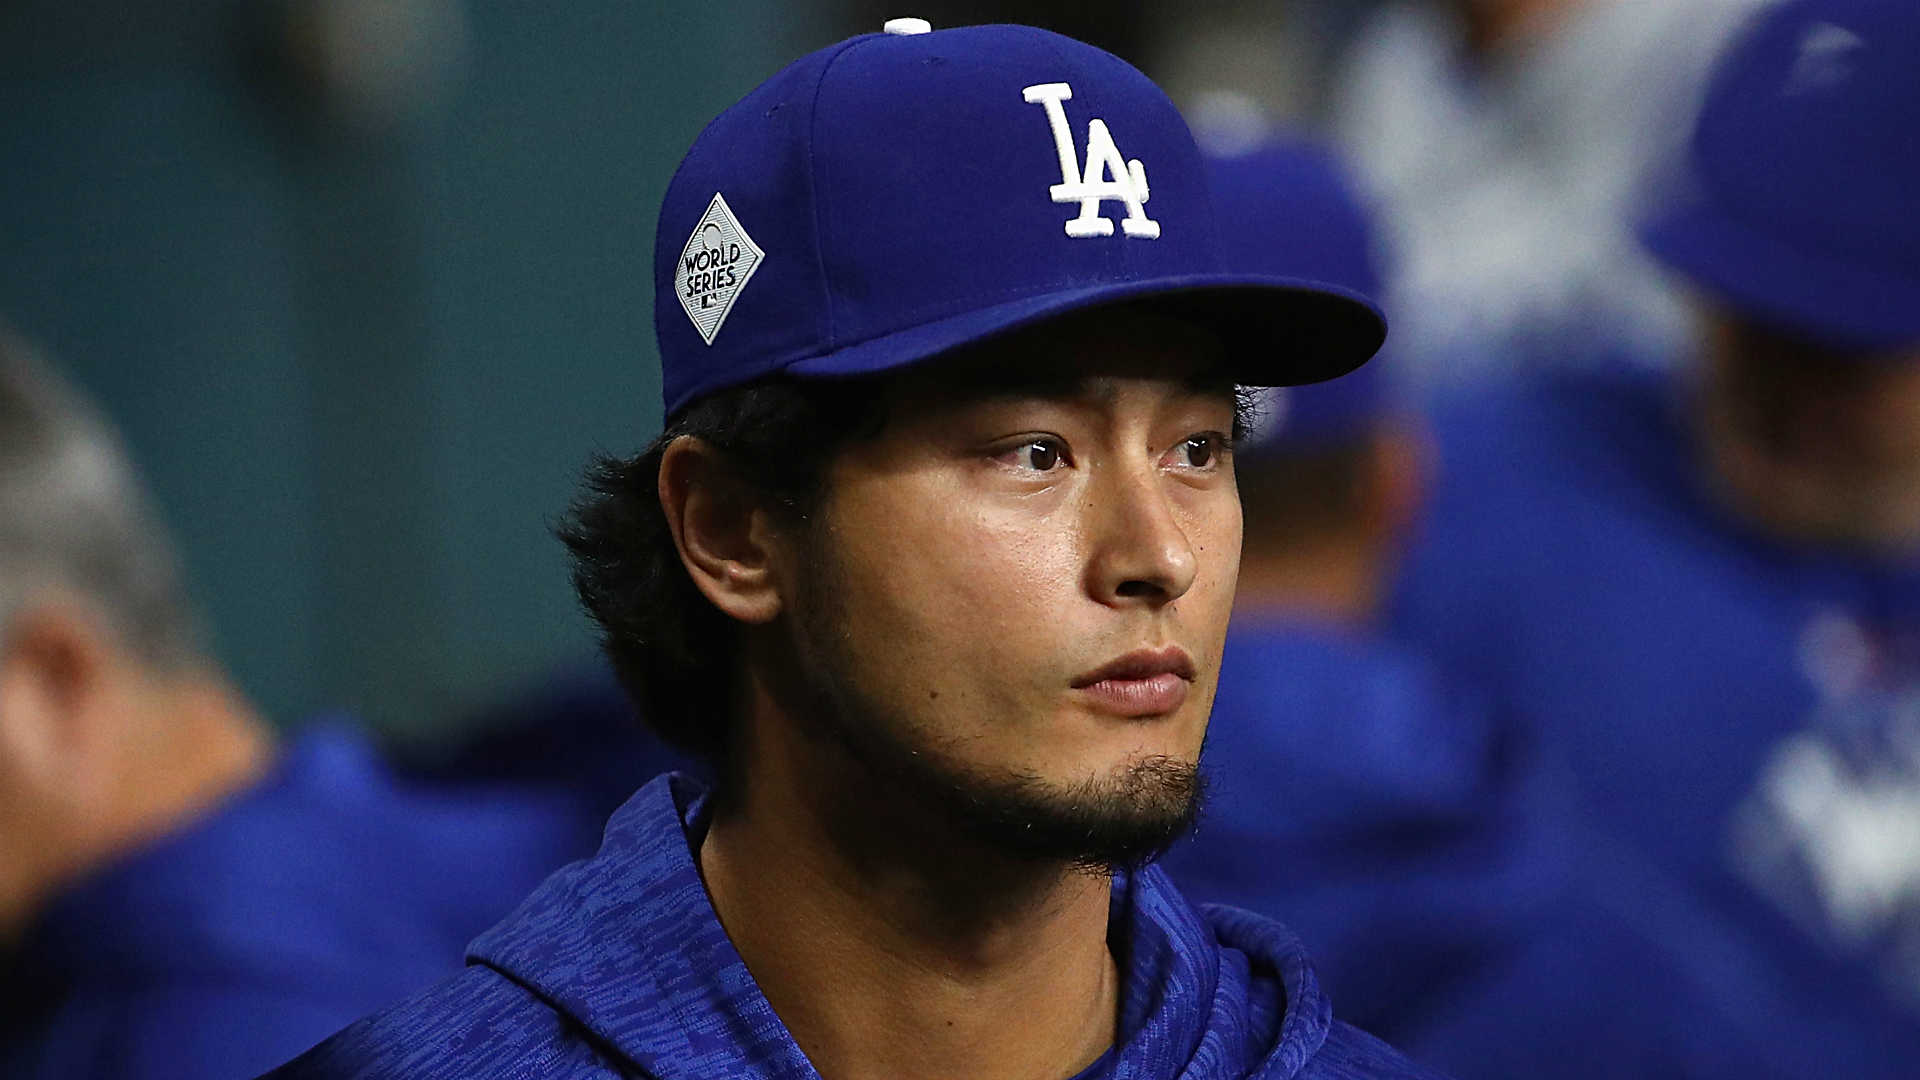 Cubs sign Yu Darvish to six-year, $126 million contract